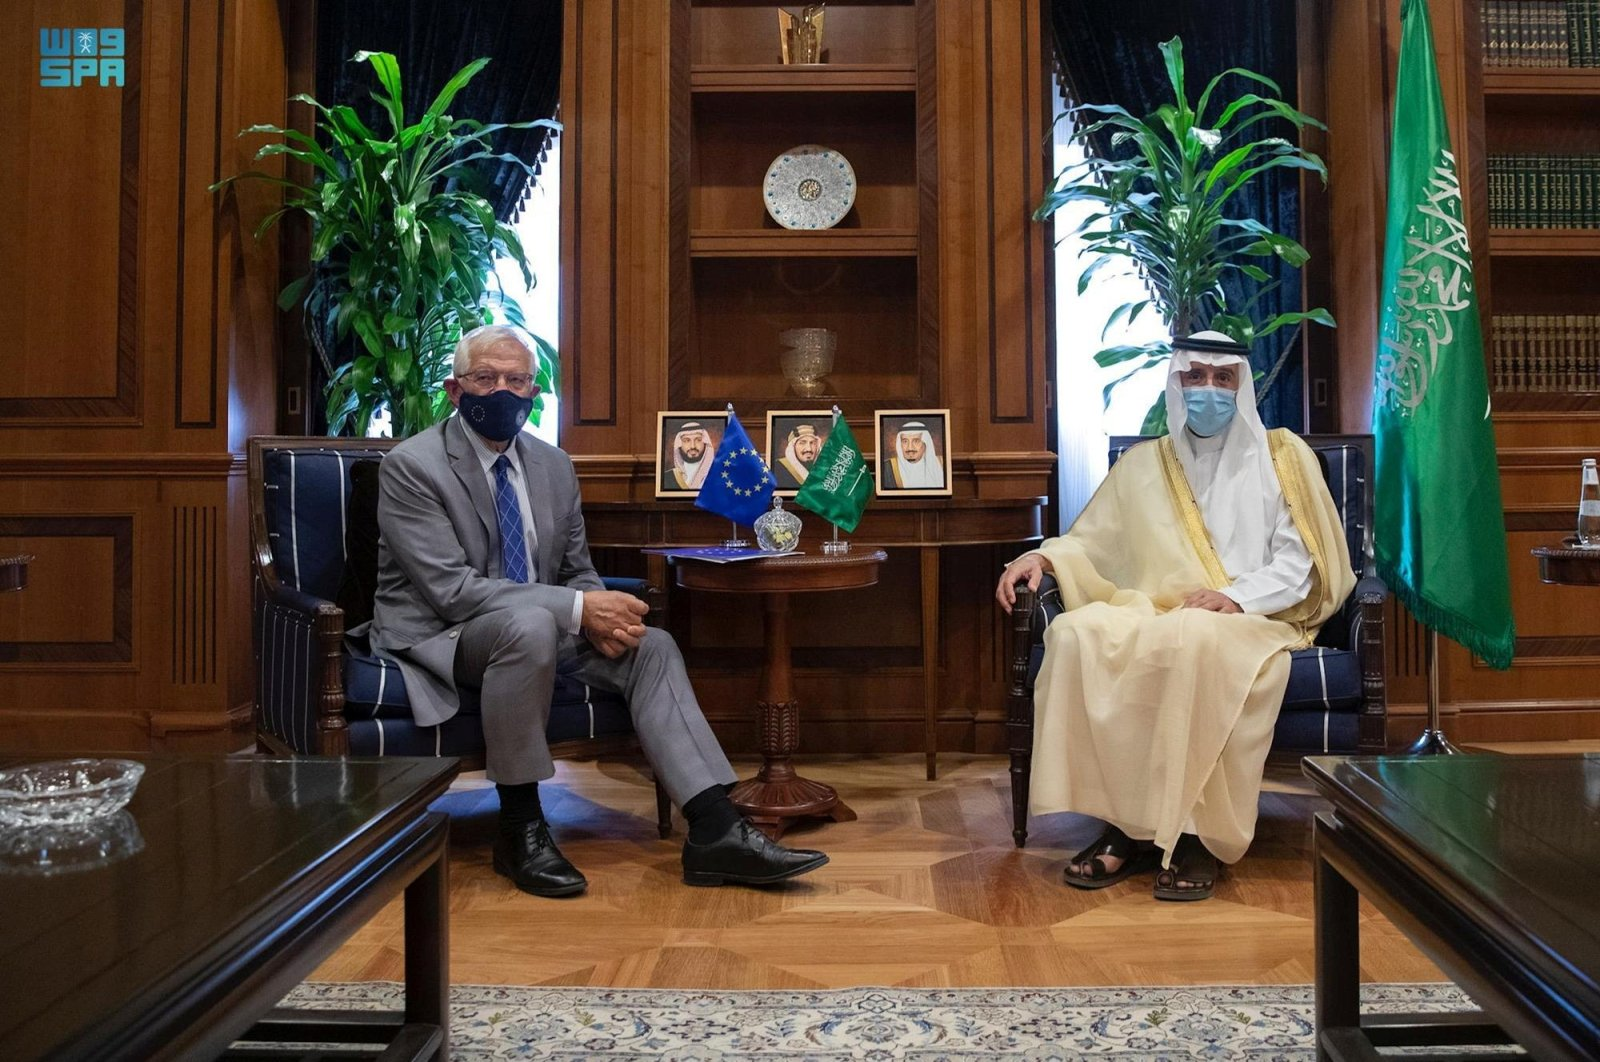 EU foreign policy chief Josep Borrell (L) meets with Saudi Arabia's Minister of State for Foreign Affairs Adel al-Jubeir in Riyadh, Saudi Arabia, Oct. 3, 2021. (Reuters Photo)